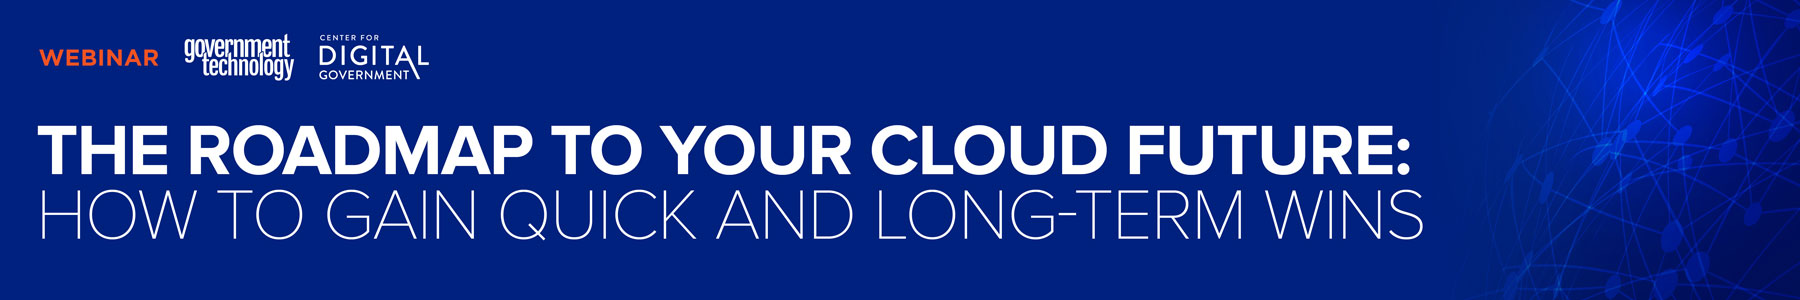 The Roadmap to Your Cloud Future: How to Gain Quick and Long-Term Wins